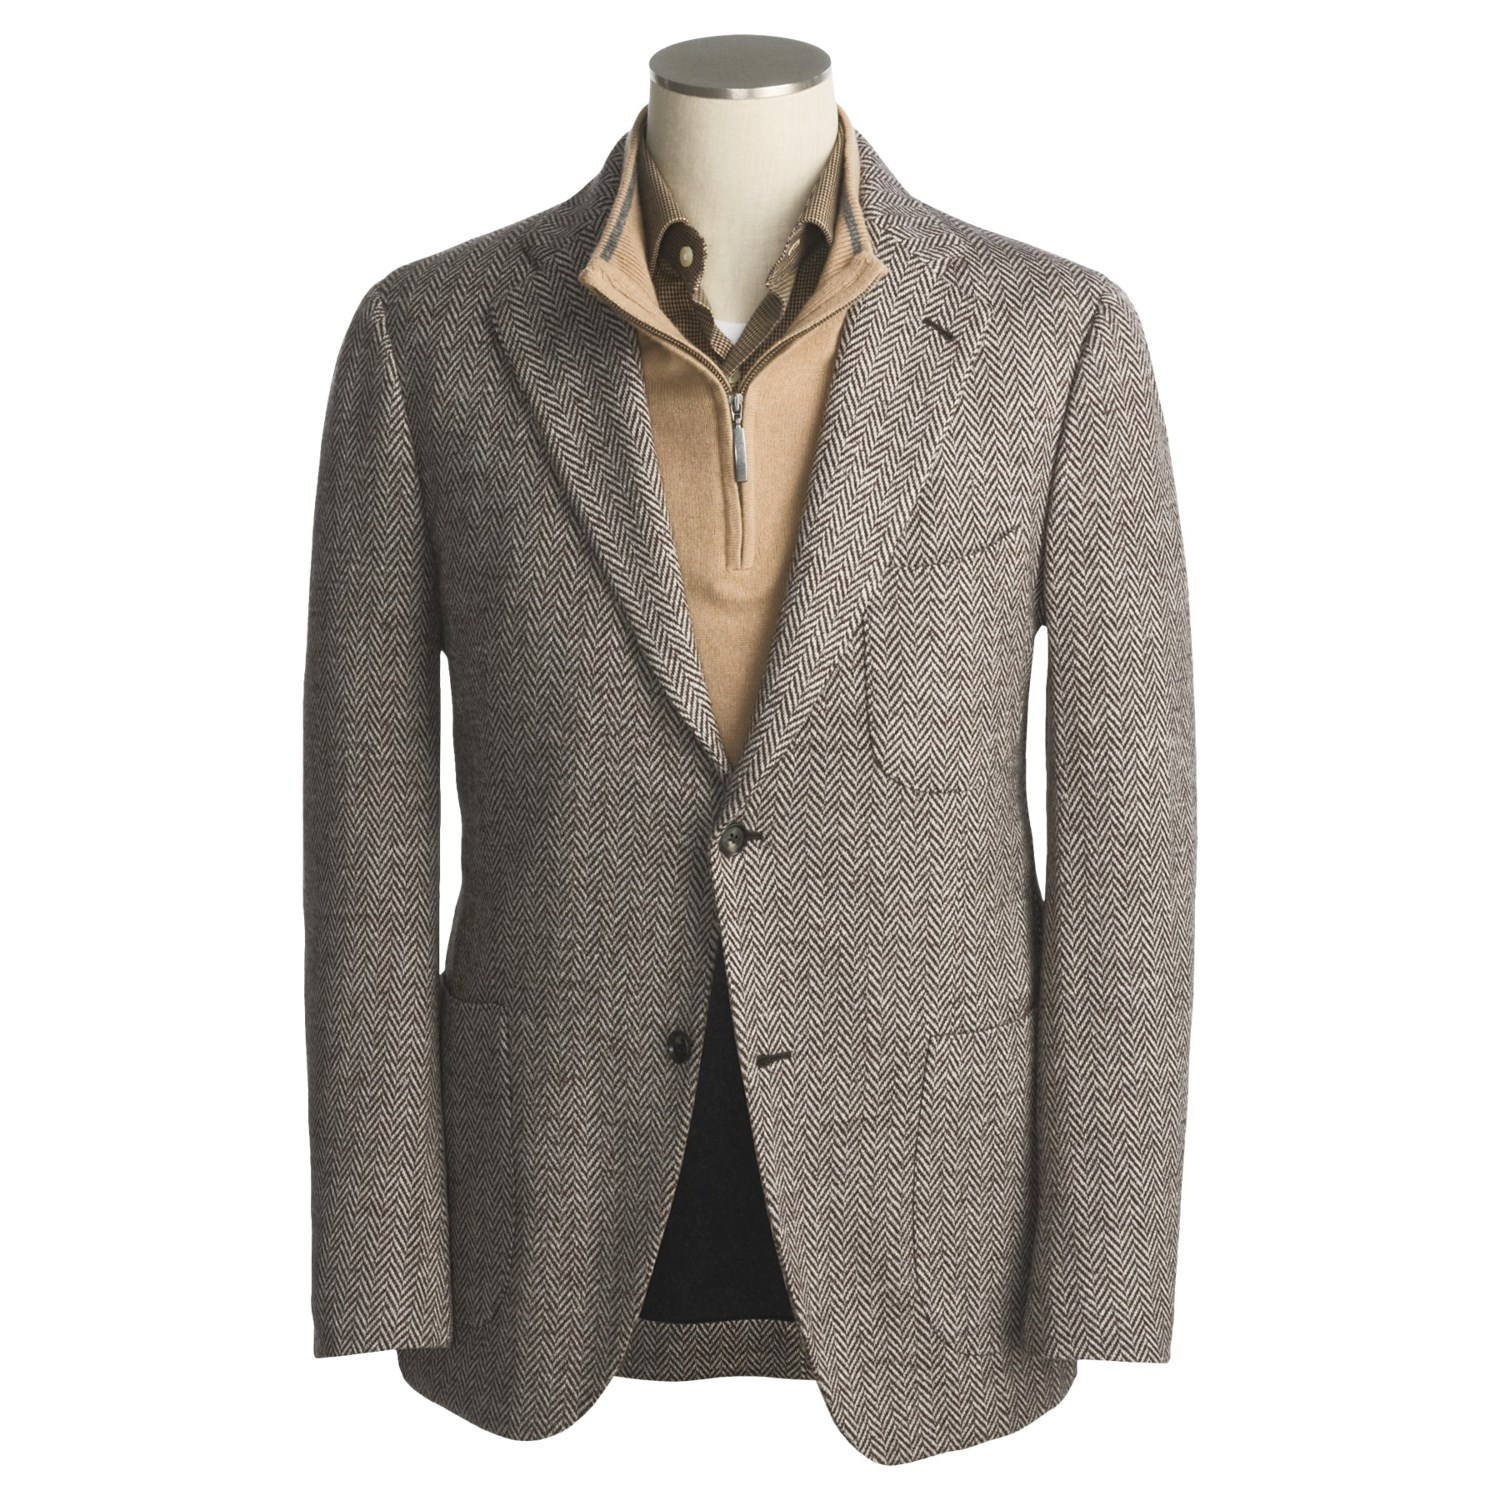 Online shopping for Clothing & Accessories from a great selection of Sport Coats & Blazers, Suits, Tuxedos, Vests, Suit Jackets, Suit Pants & more at everyday low prices.